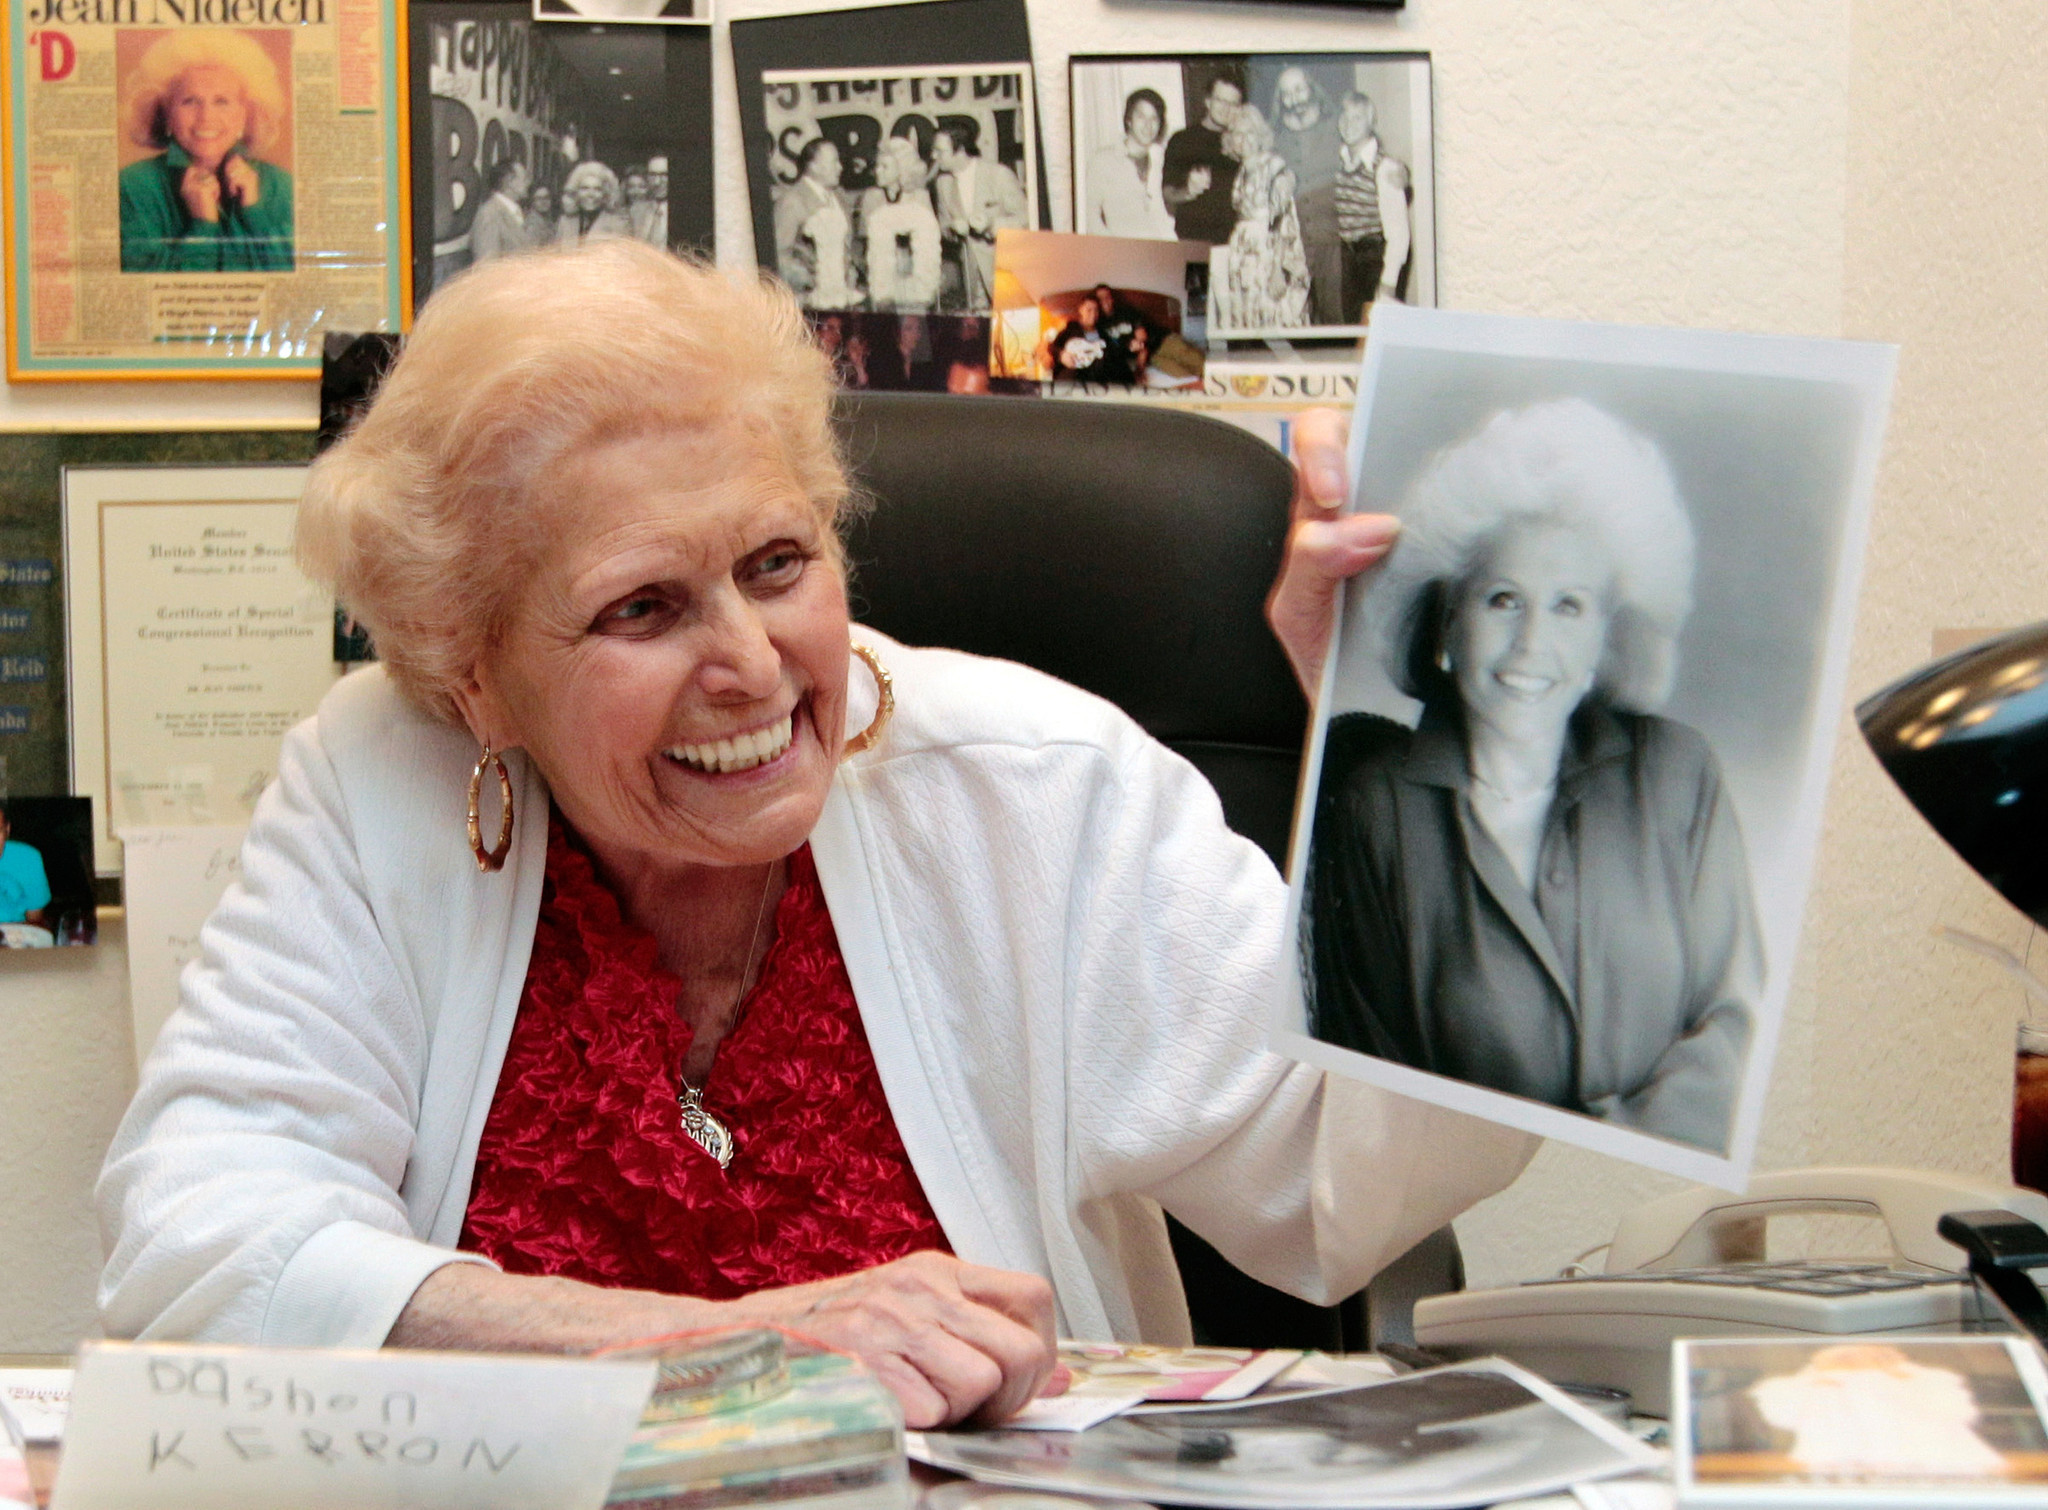 Jean Nidetch Dies At 91 A Founder Of Weight Watchers La